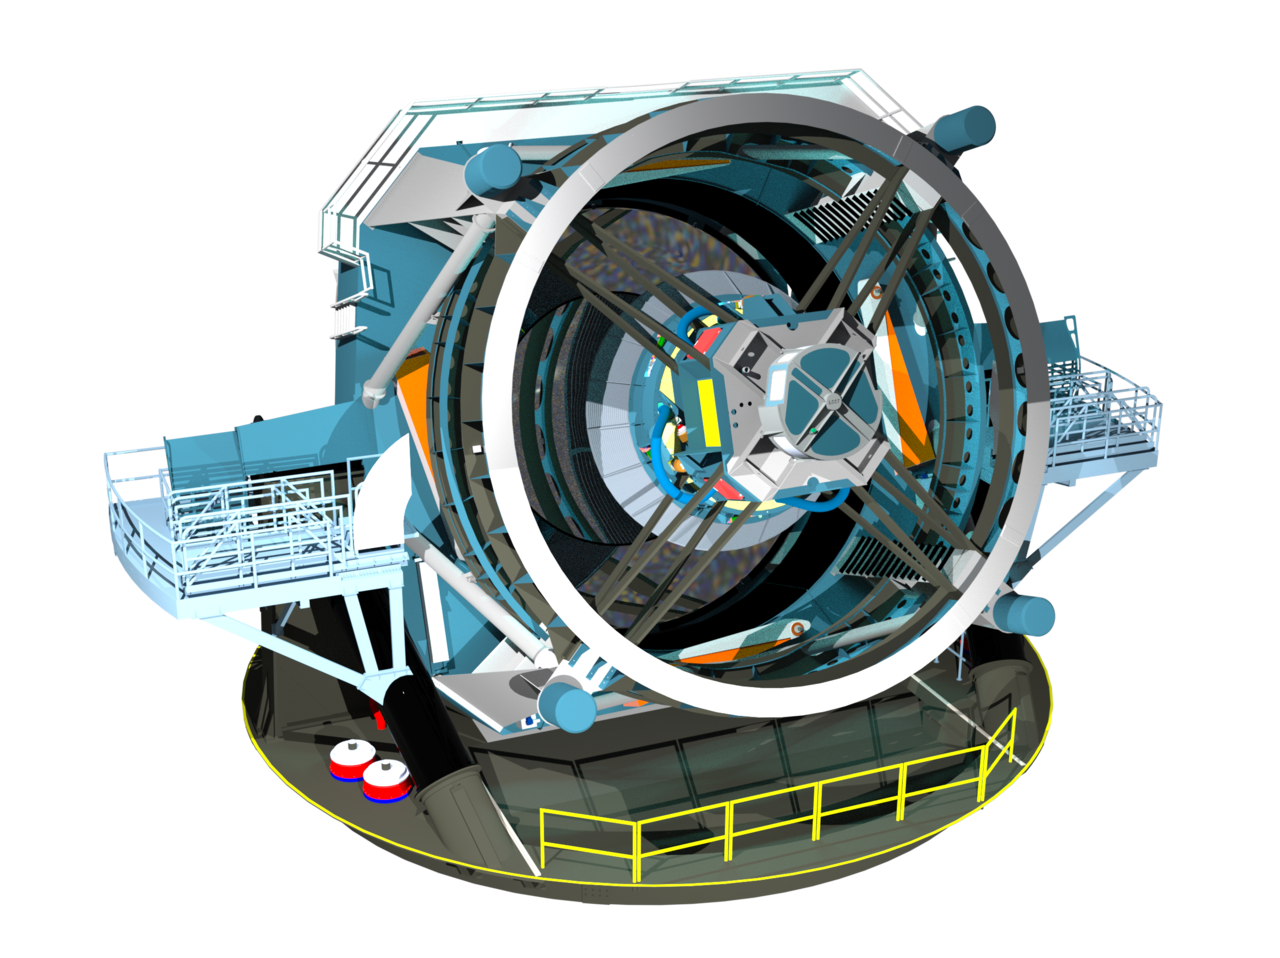 https://upload.wikimedia.org/wikipedia/commons/thumb/d/d8/Large_Synoptic_Survey_Telescope_3_4_render_2013.png/1280px-Large_Synoptic_Survey_Telescope_3_4_render_2013.png